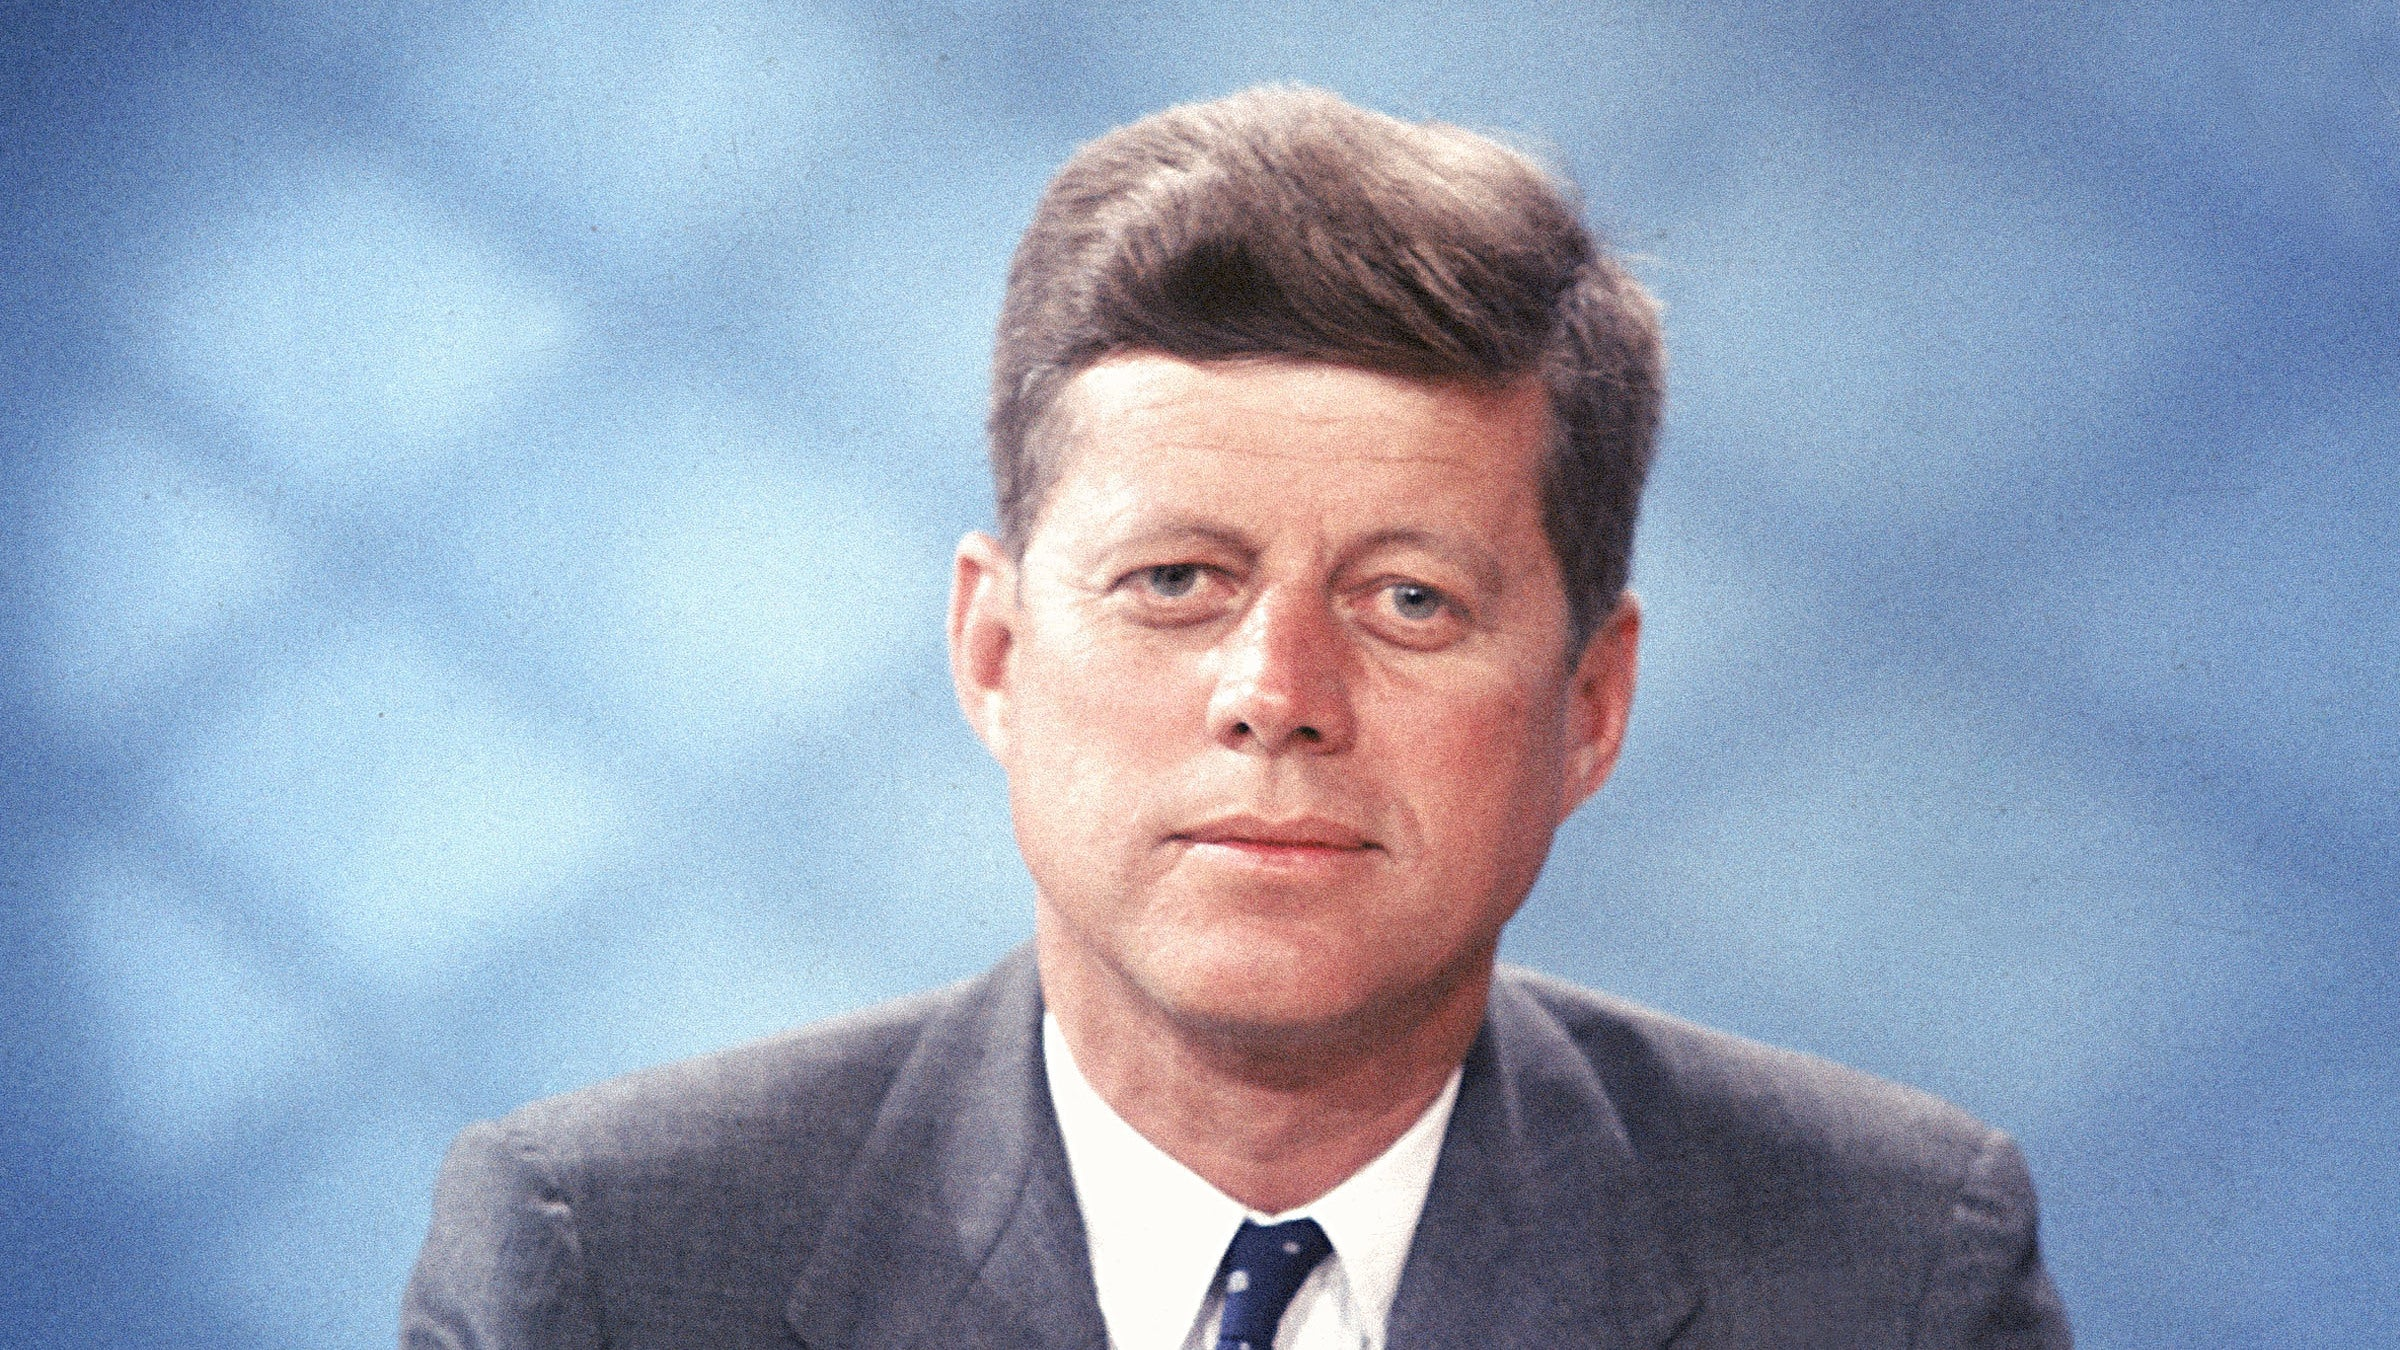 John F. Kennedy Lived With More Pain Than We Realised